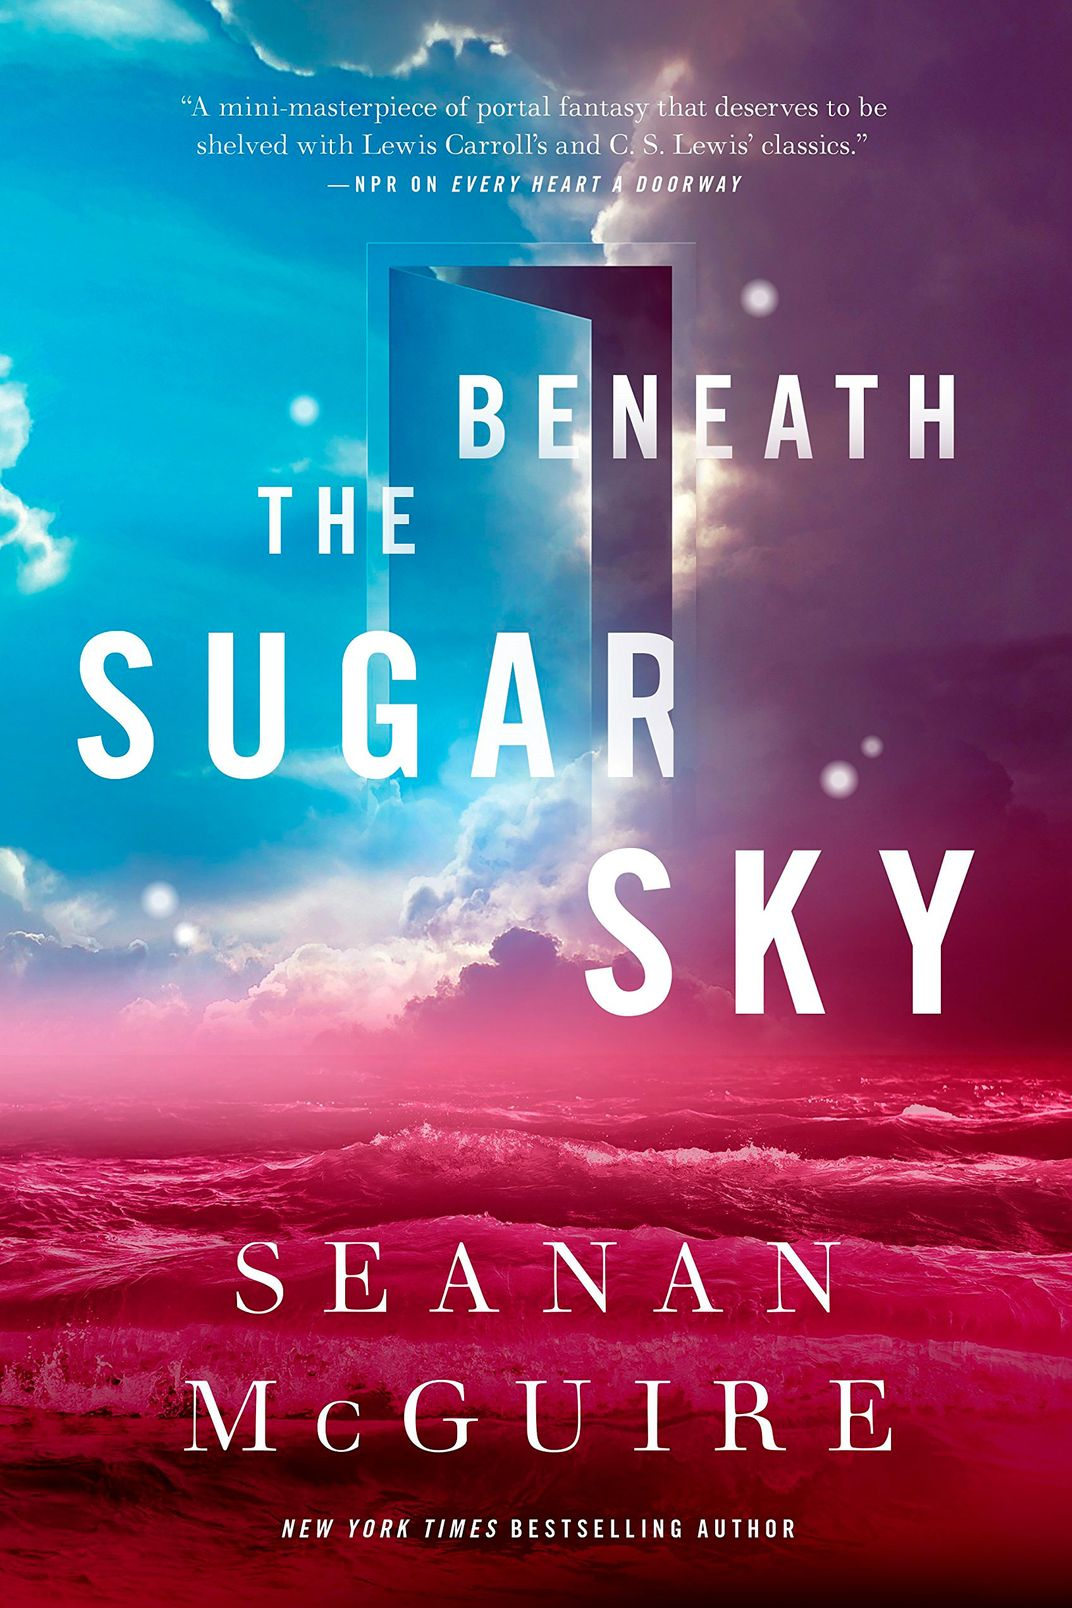 9. <em>Beneath the Sugar Sky</em>, by Seanan McGuire